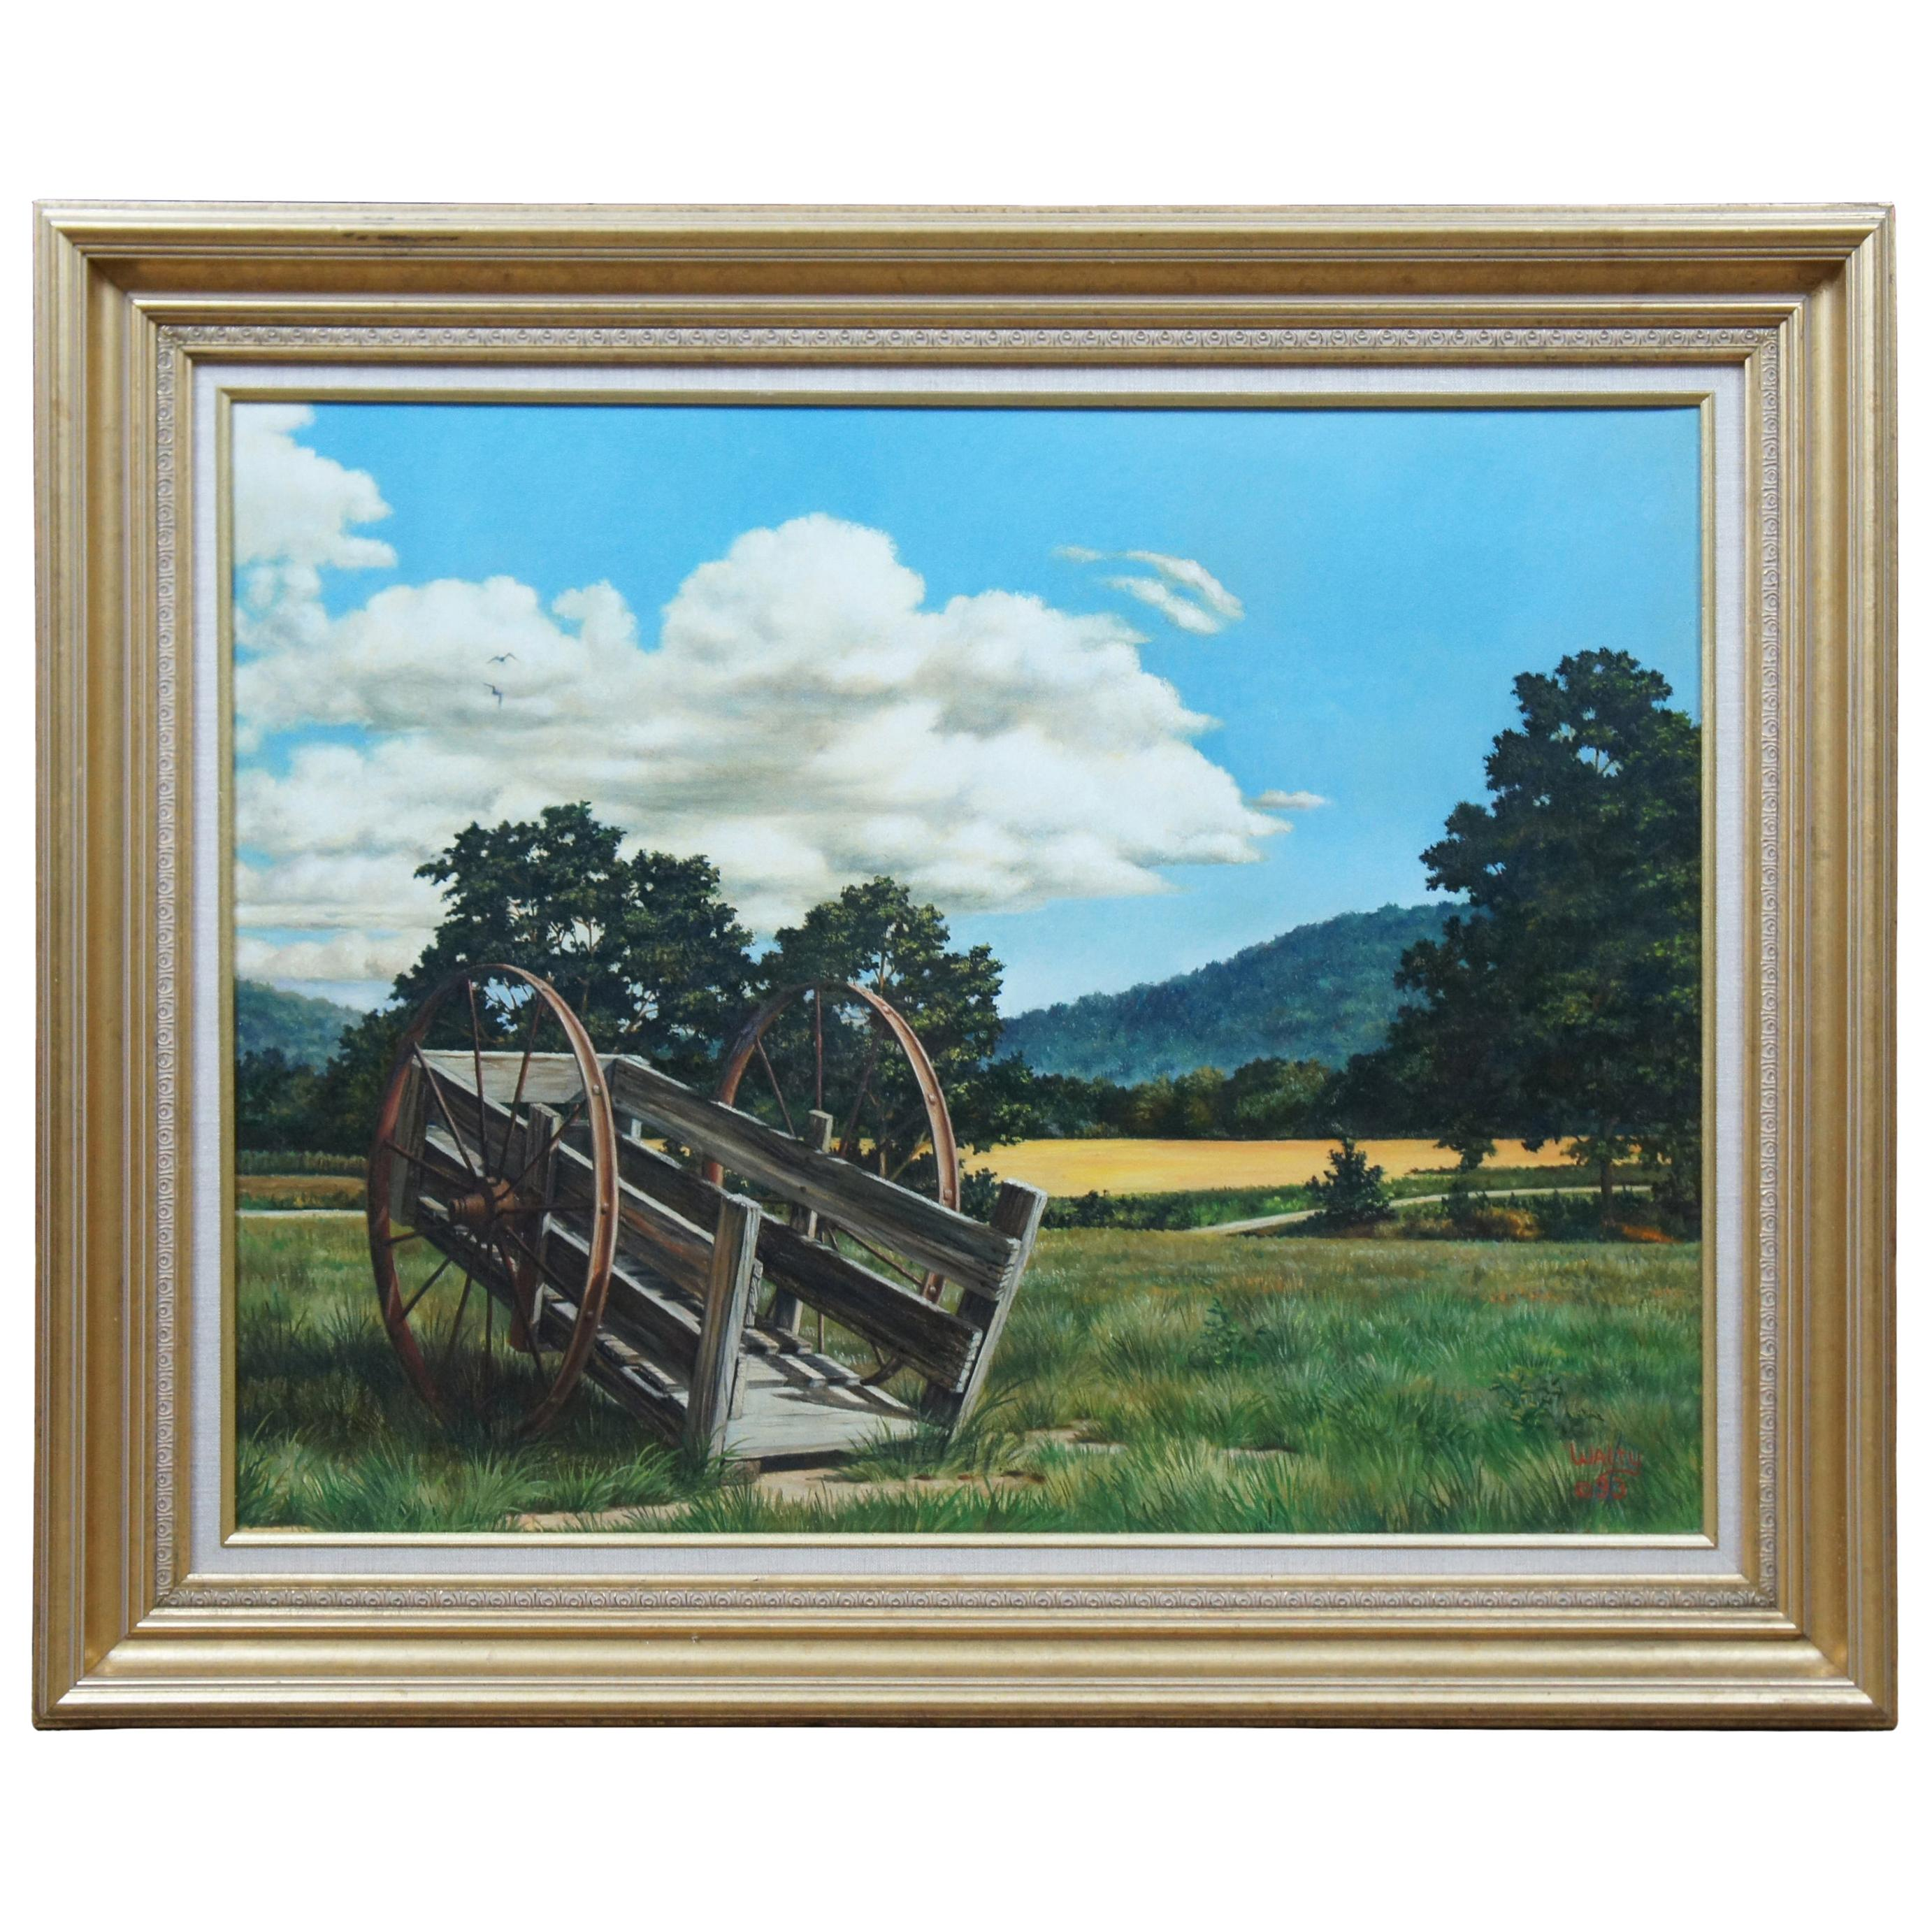 1993 Walty Signed Oil Painting on Canvas Countryside Landscape Wagon Realism